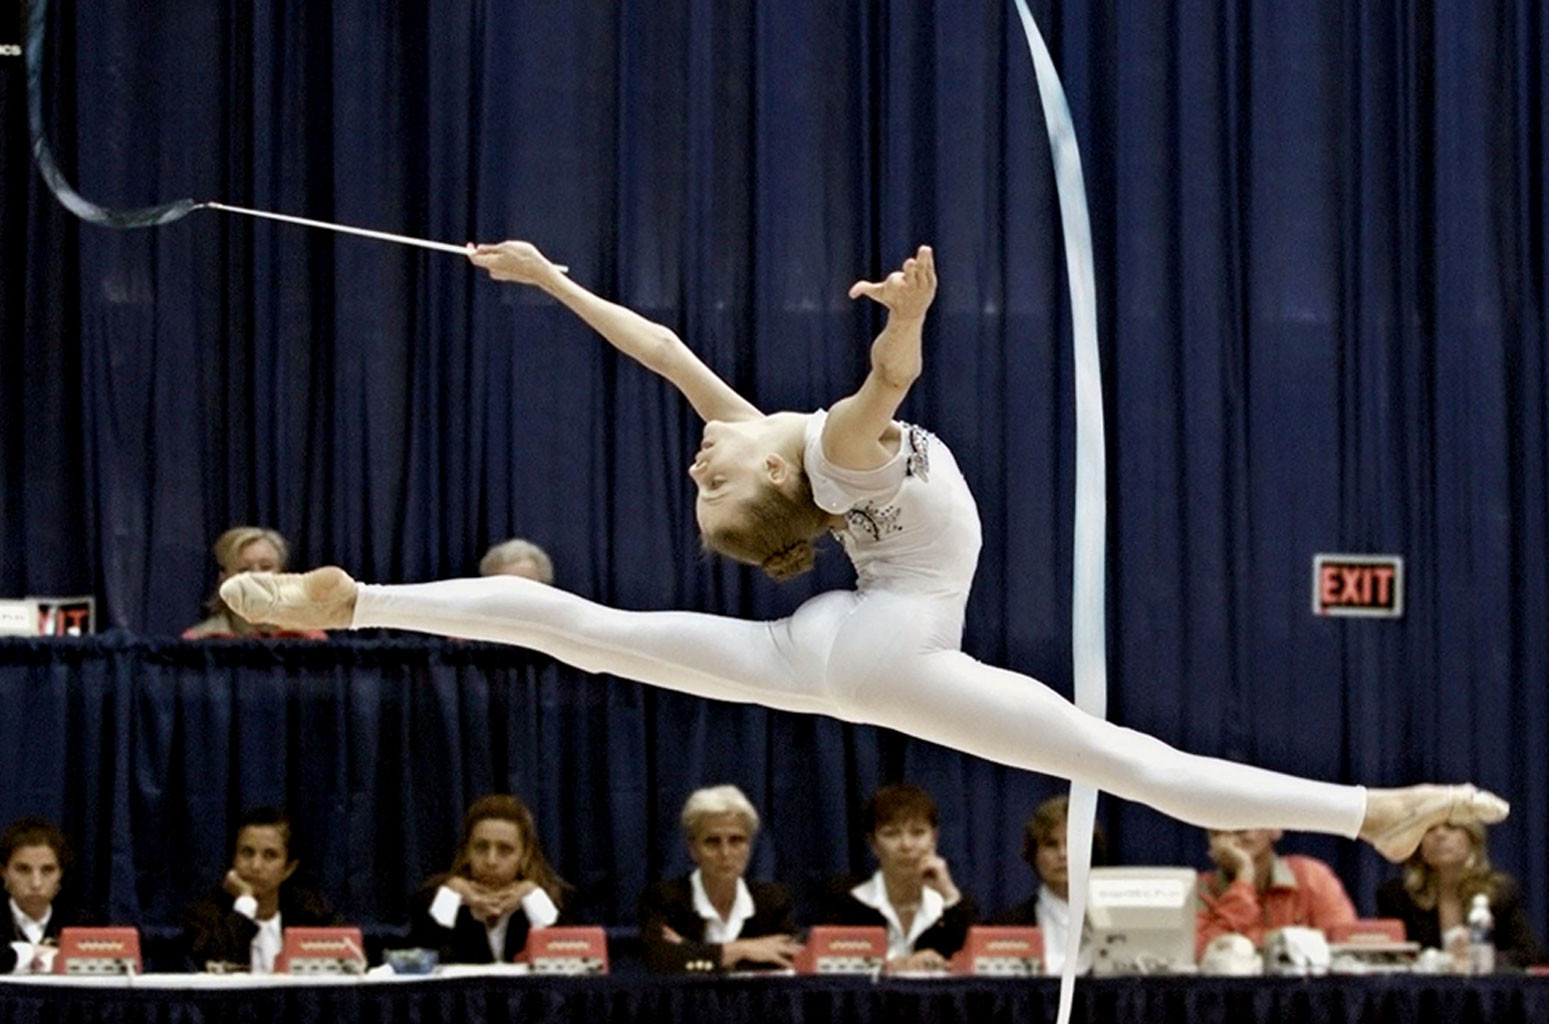 Jessica Howard, Gymnastics